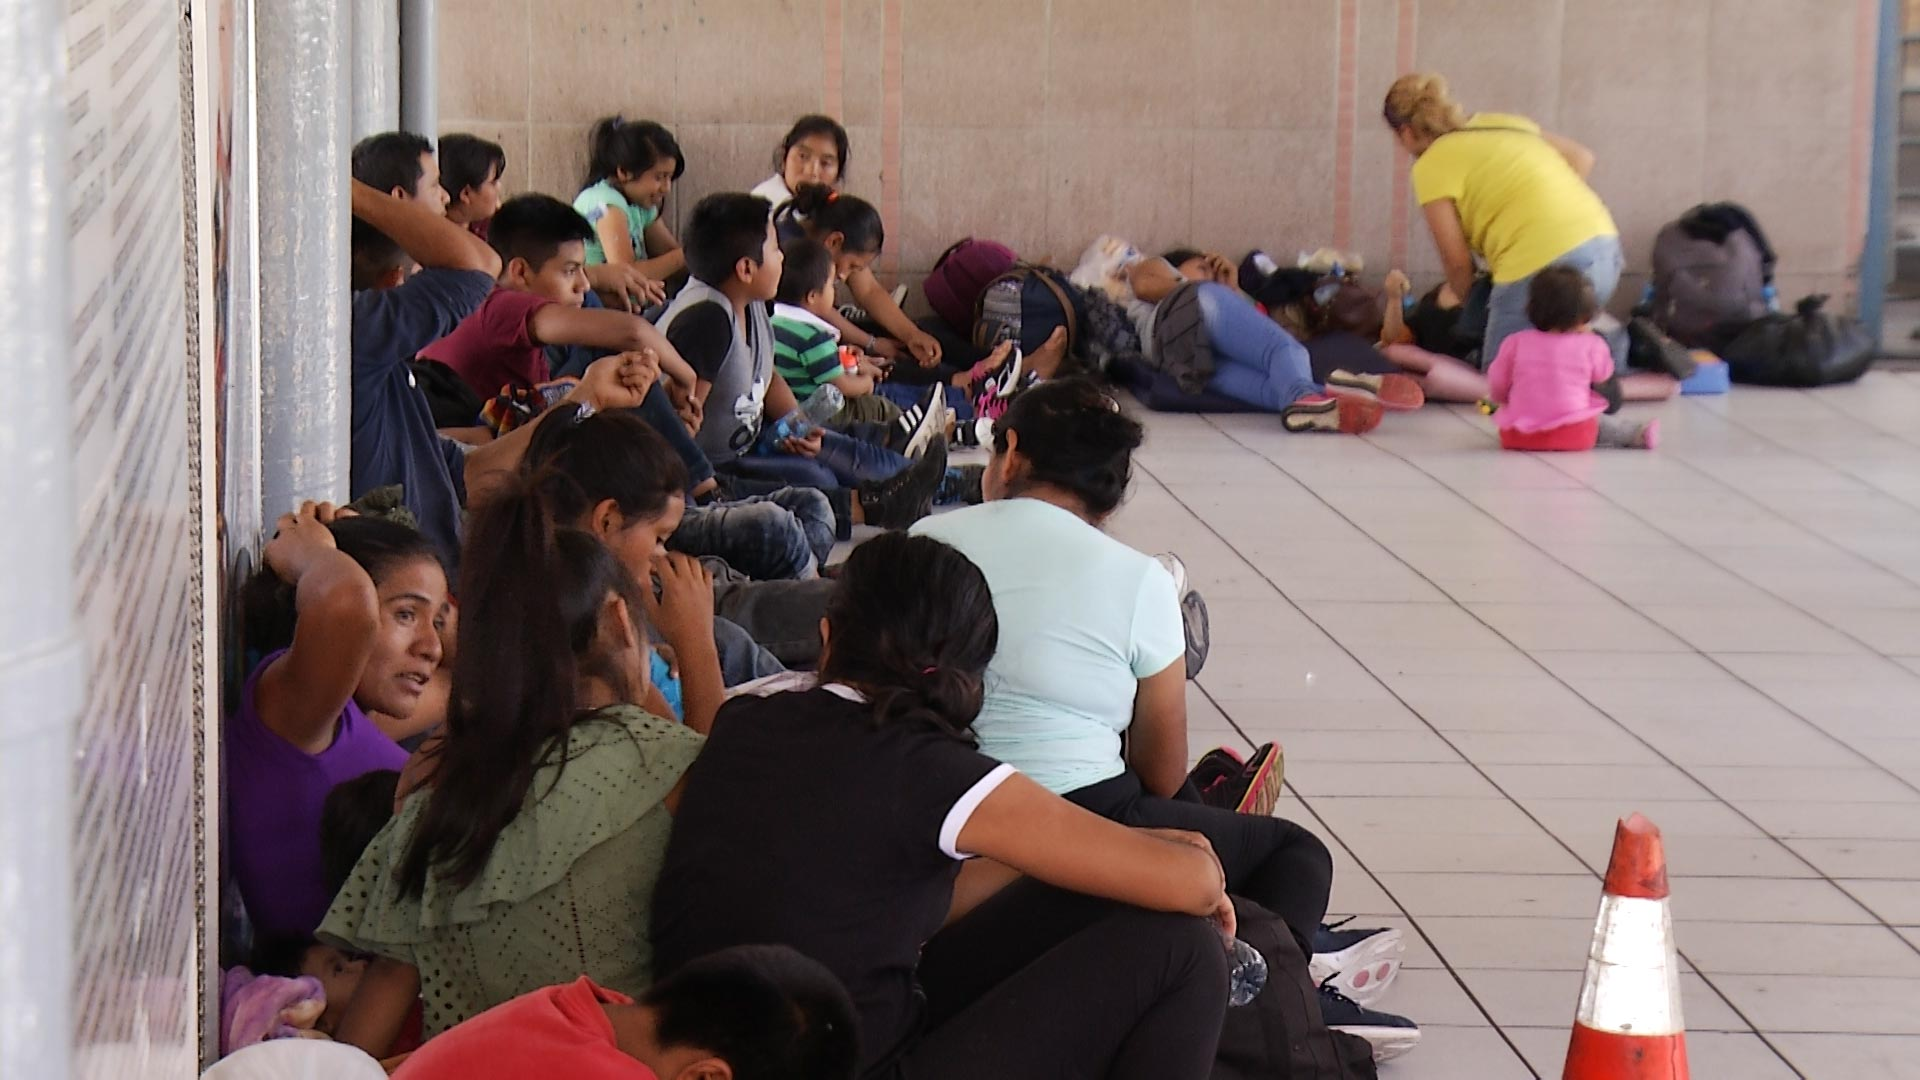 Families seeking asylum await processing outside the port of entry in Nogales, Sonora, on Sept. 4, 2018.